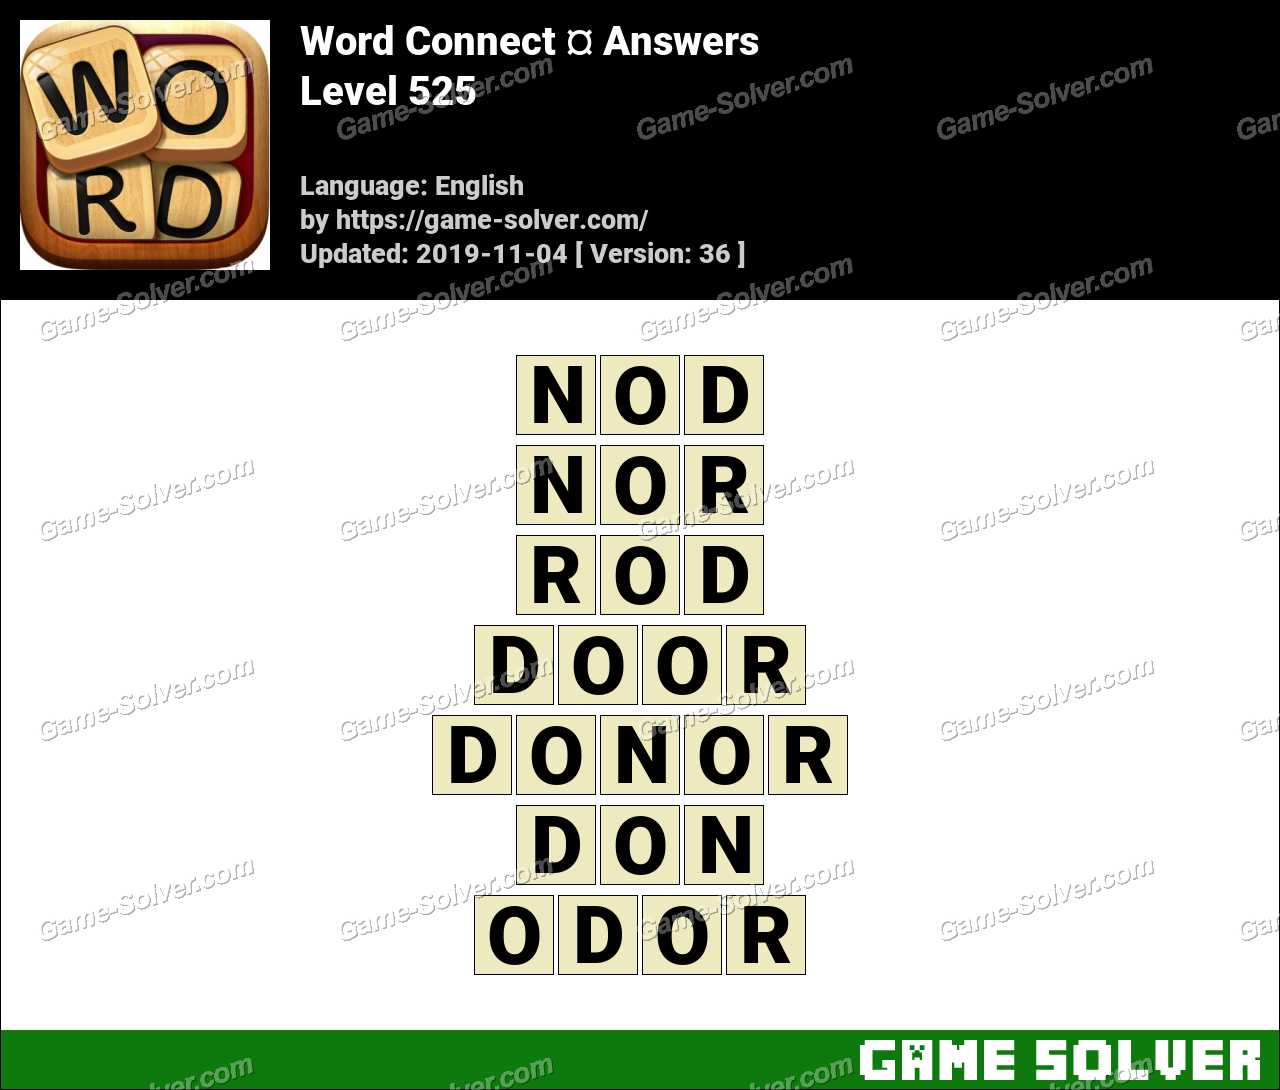 Word Connect Level 525 Answers